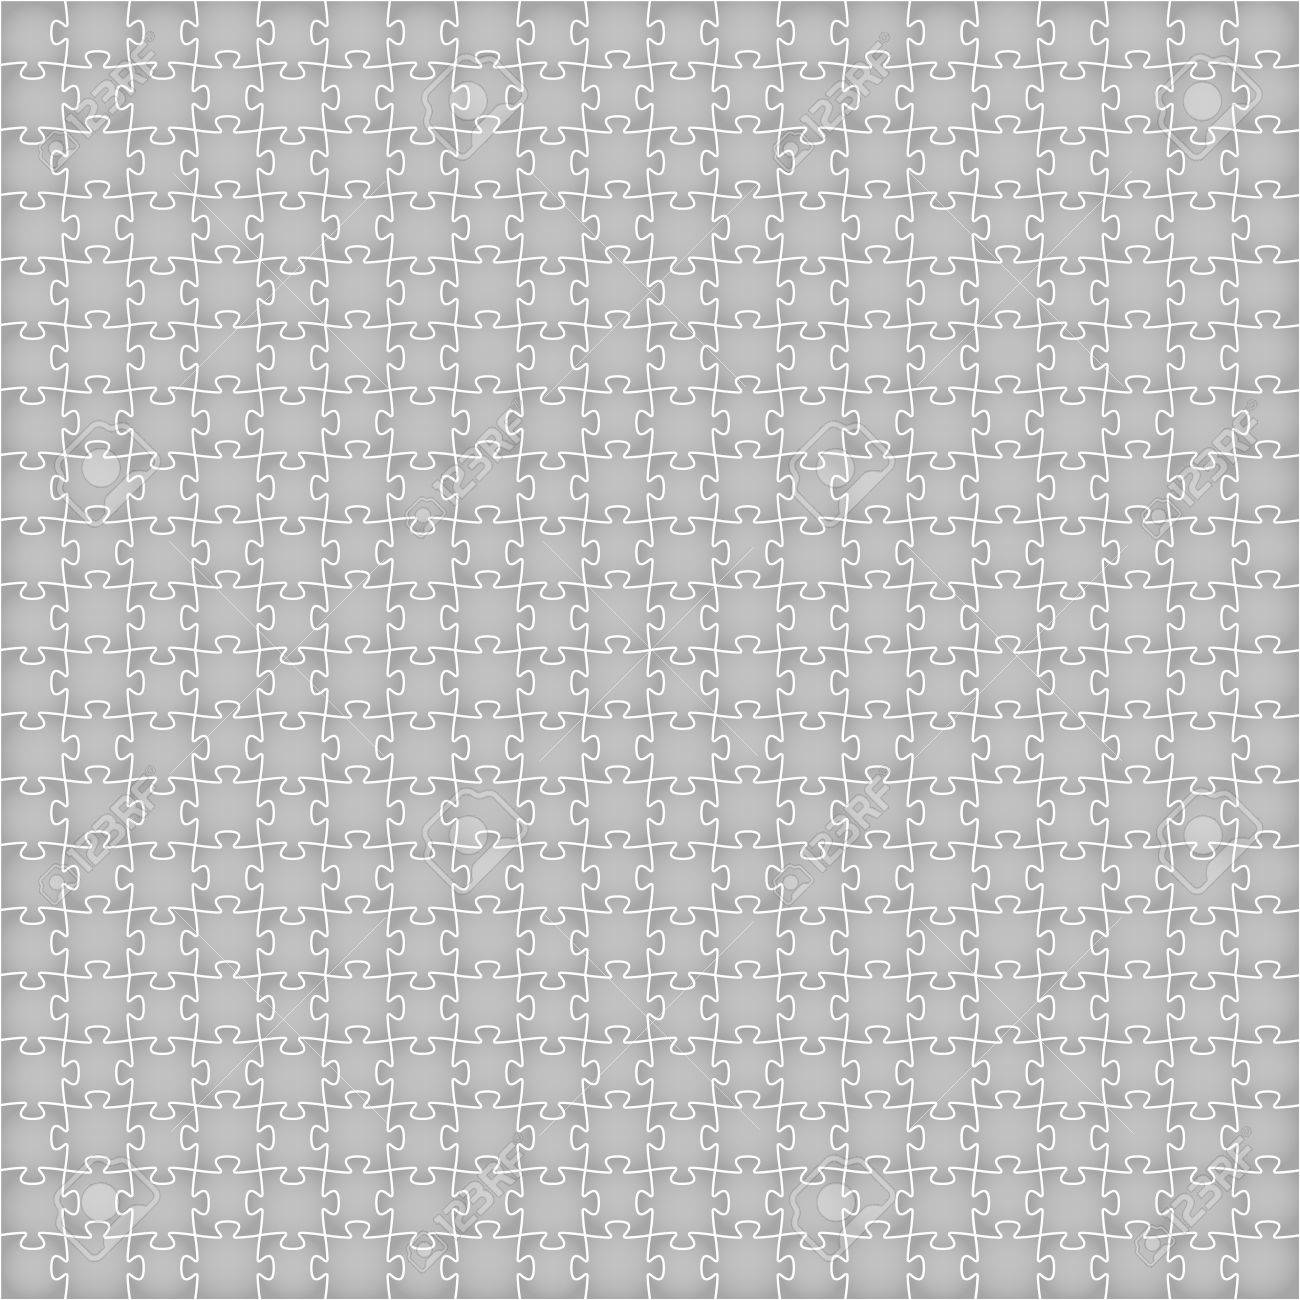 Simple Background Made Out Of Grey Puzzle Pieces Grey Puzzle ...